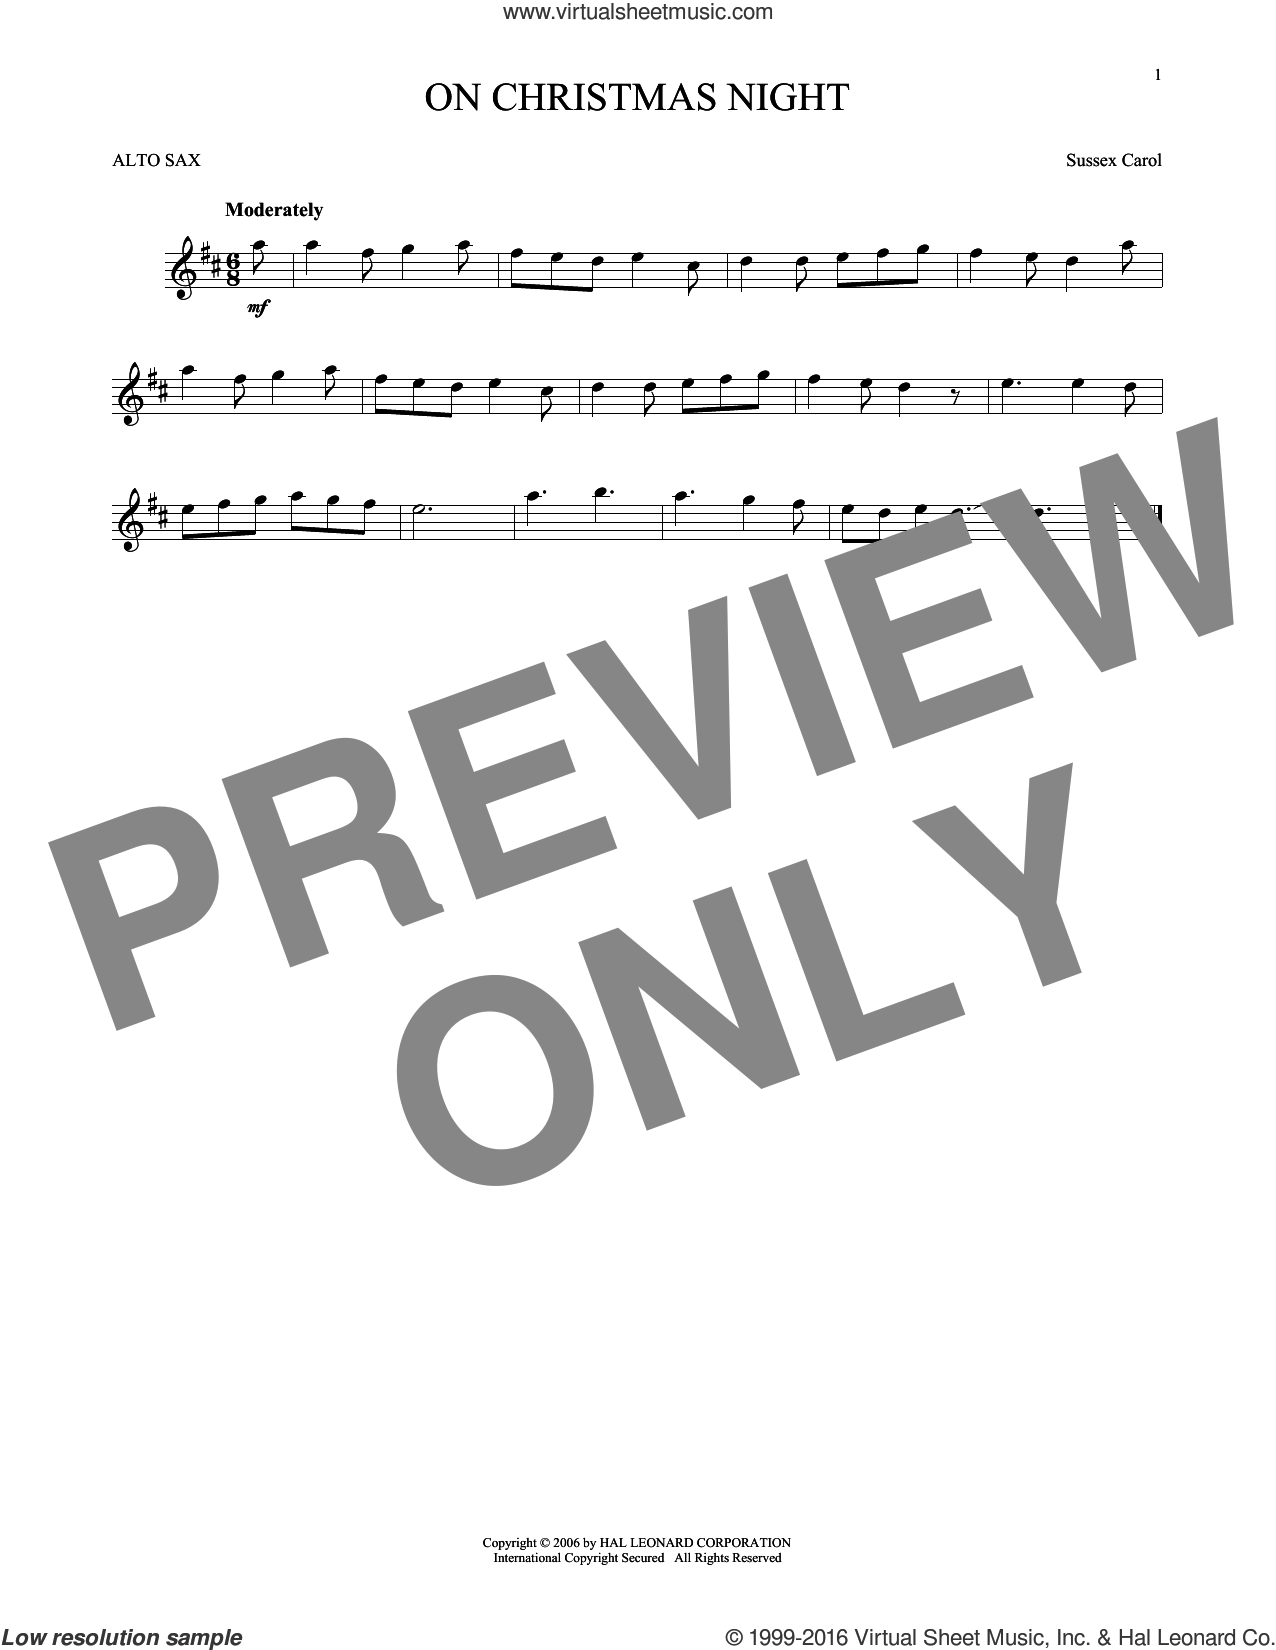 On Christmas Night sheet music for alto saxophone solo, intermediate skill level